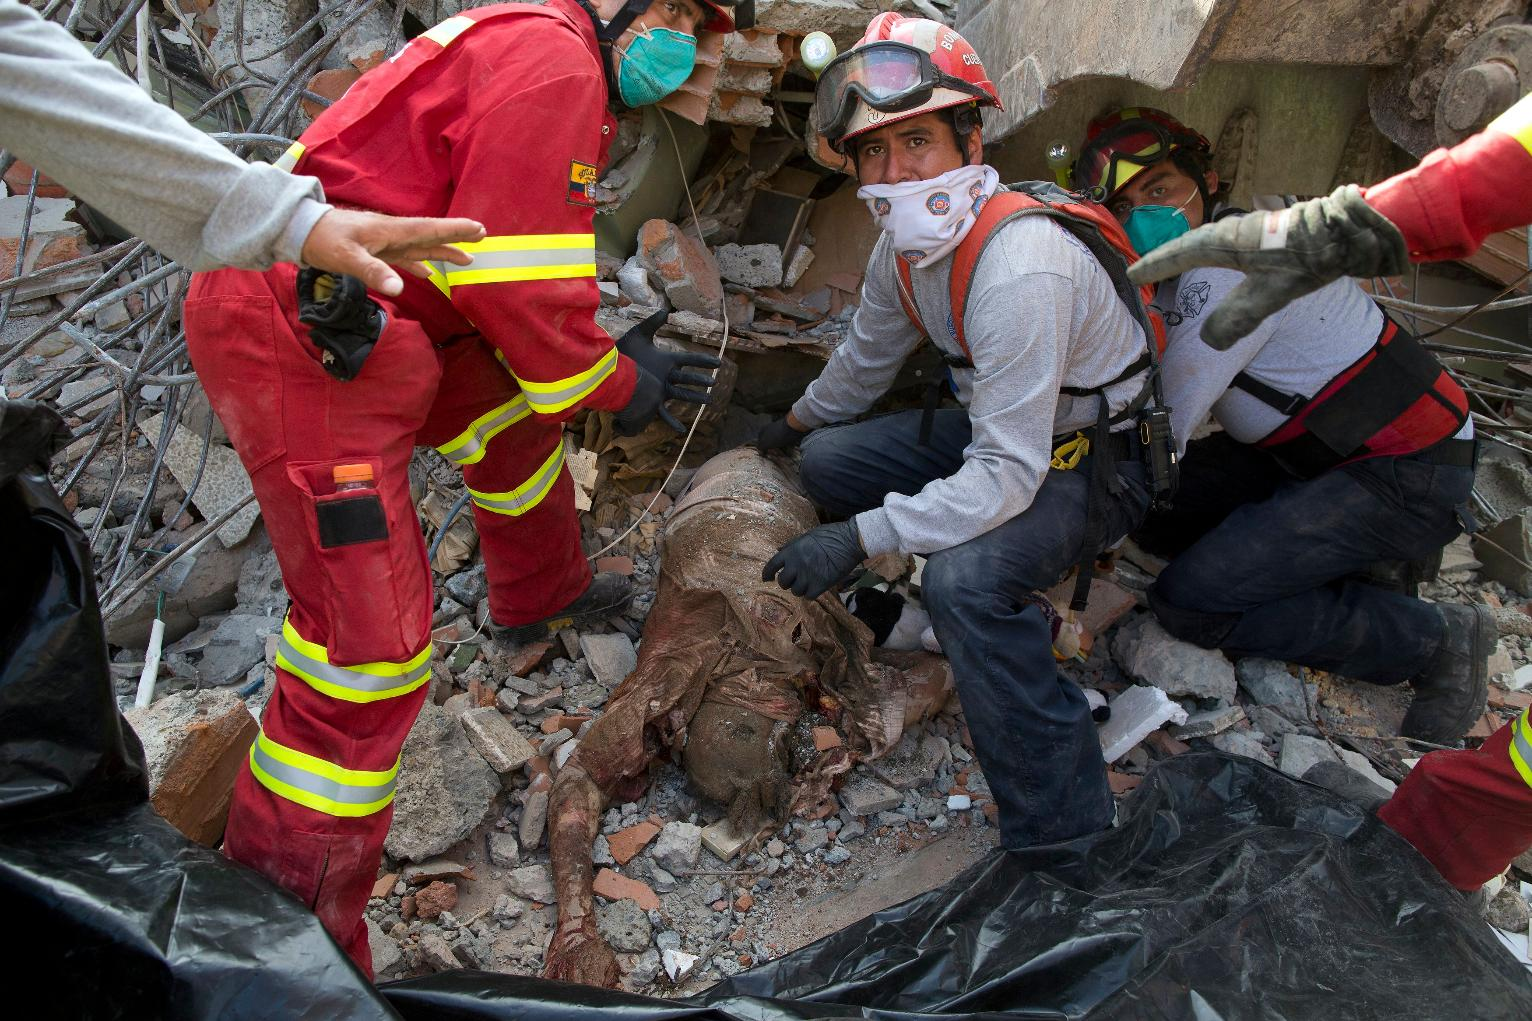 The Latest Ecuador Says Death Toll From Quake Jumps To 413 World News Us News